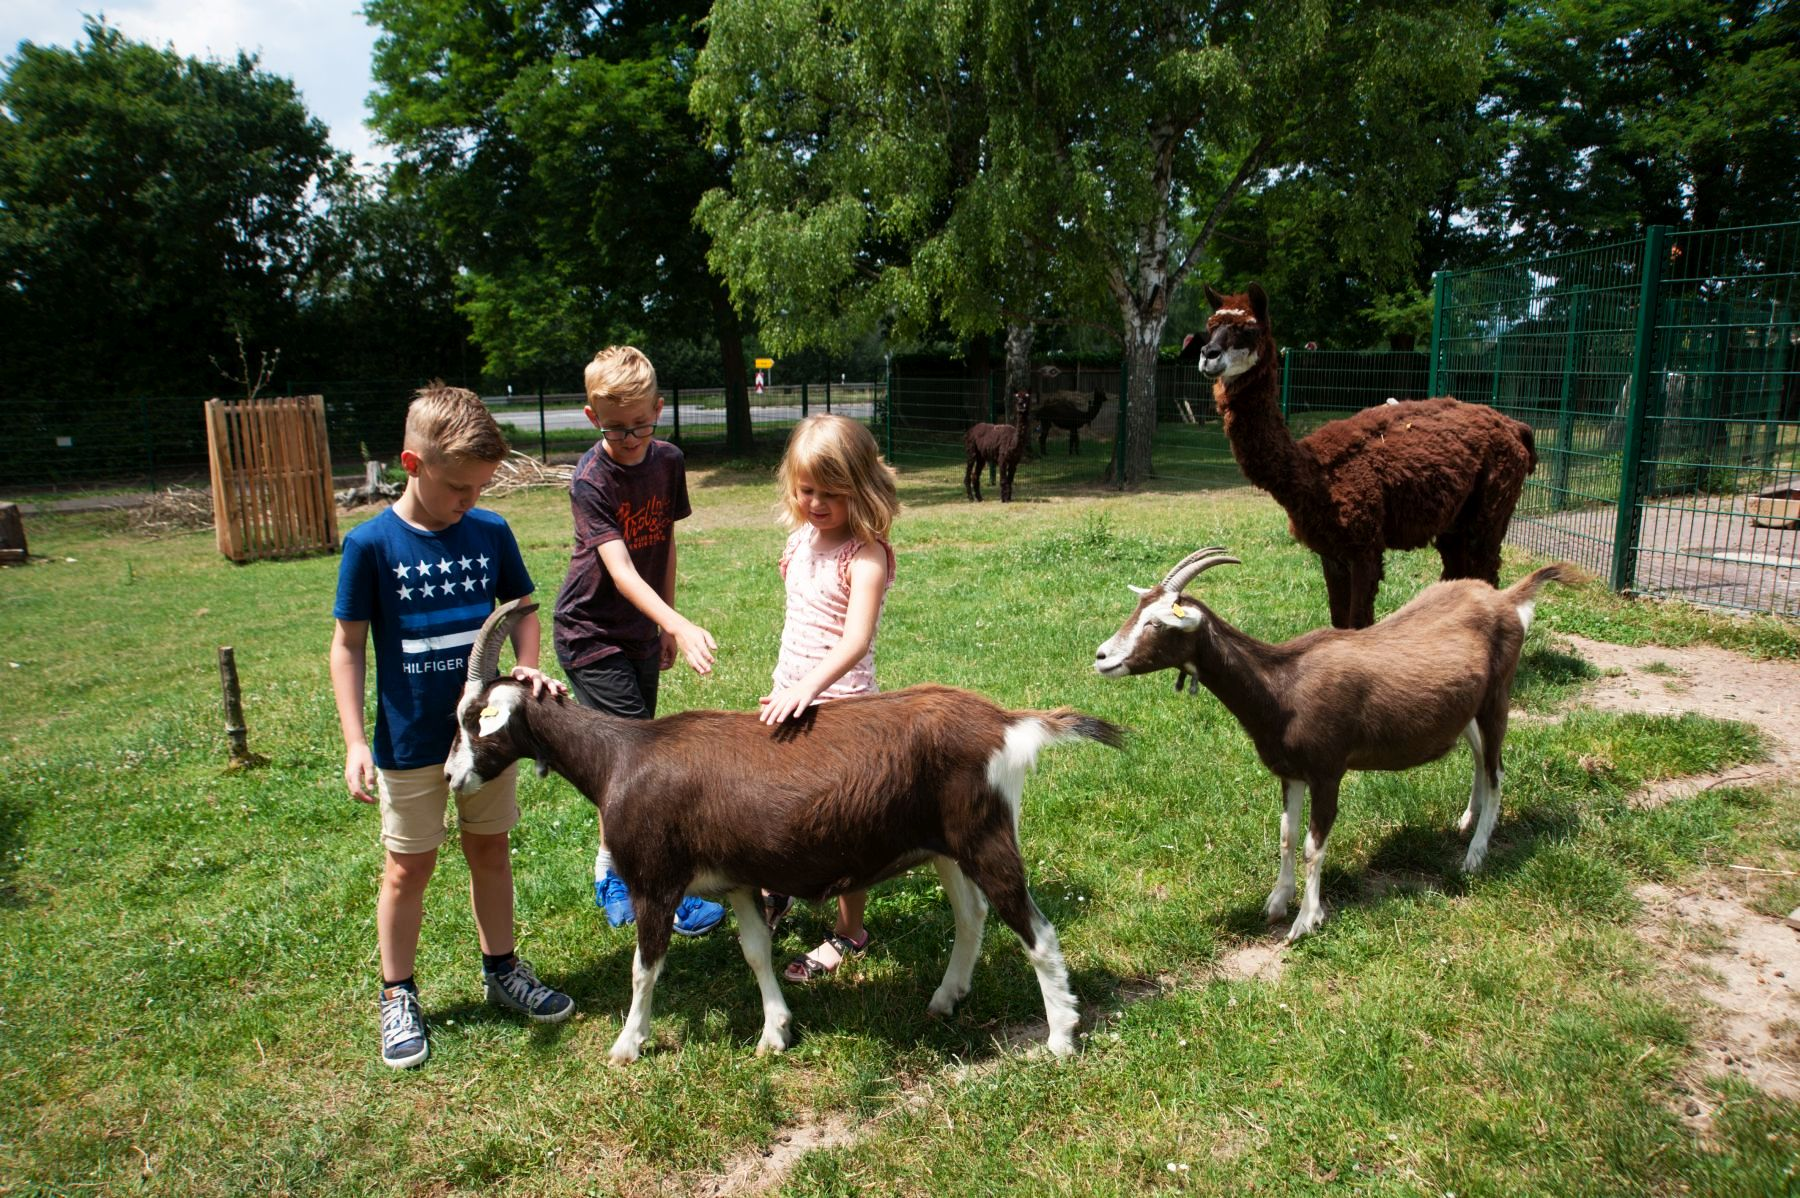 In this picture one can see children petting goats at Merzig Zoo.